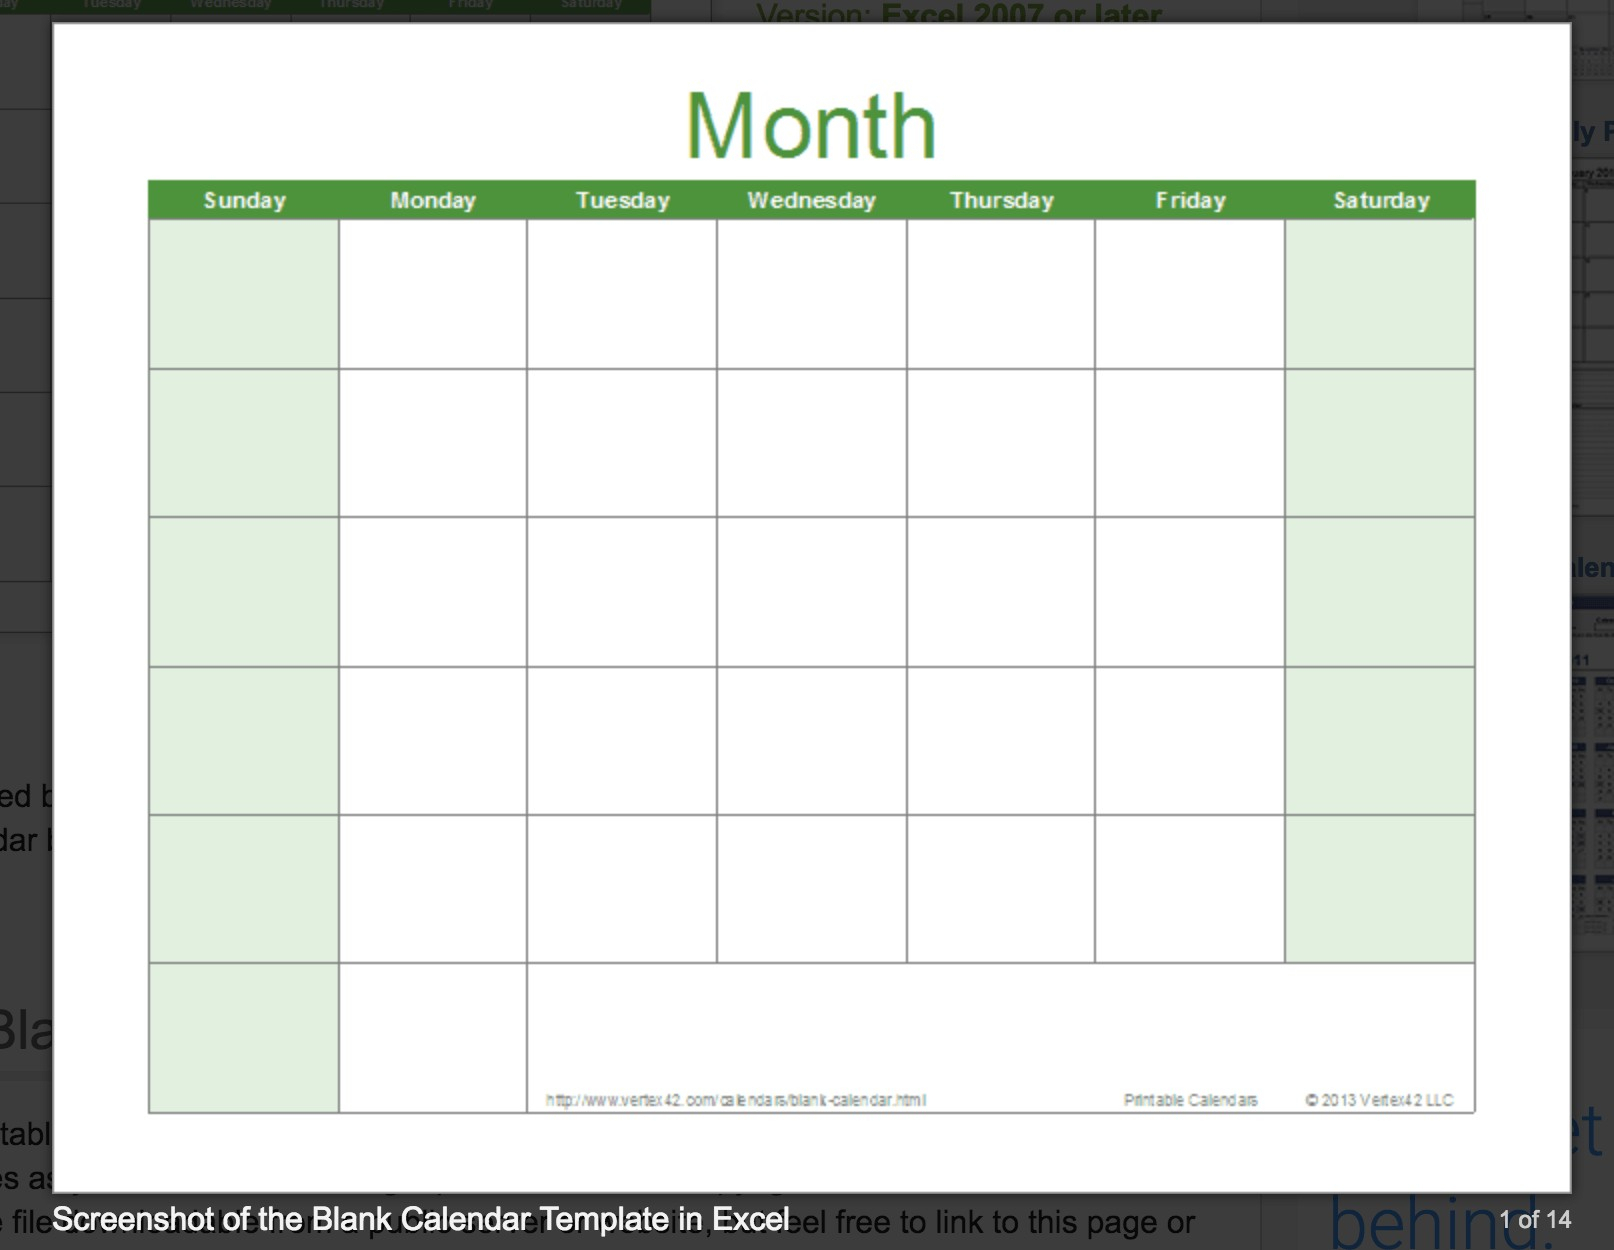 Printable Monthly Calendar Templates Blank Calendar Wonderfully for Printable Editable Monthly Calendar Template